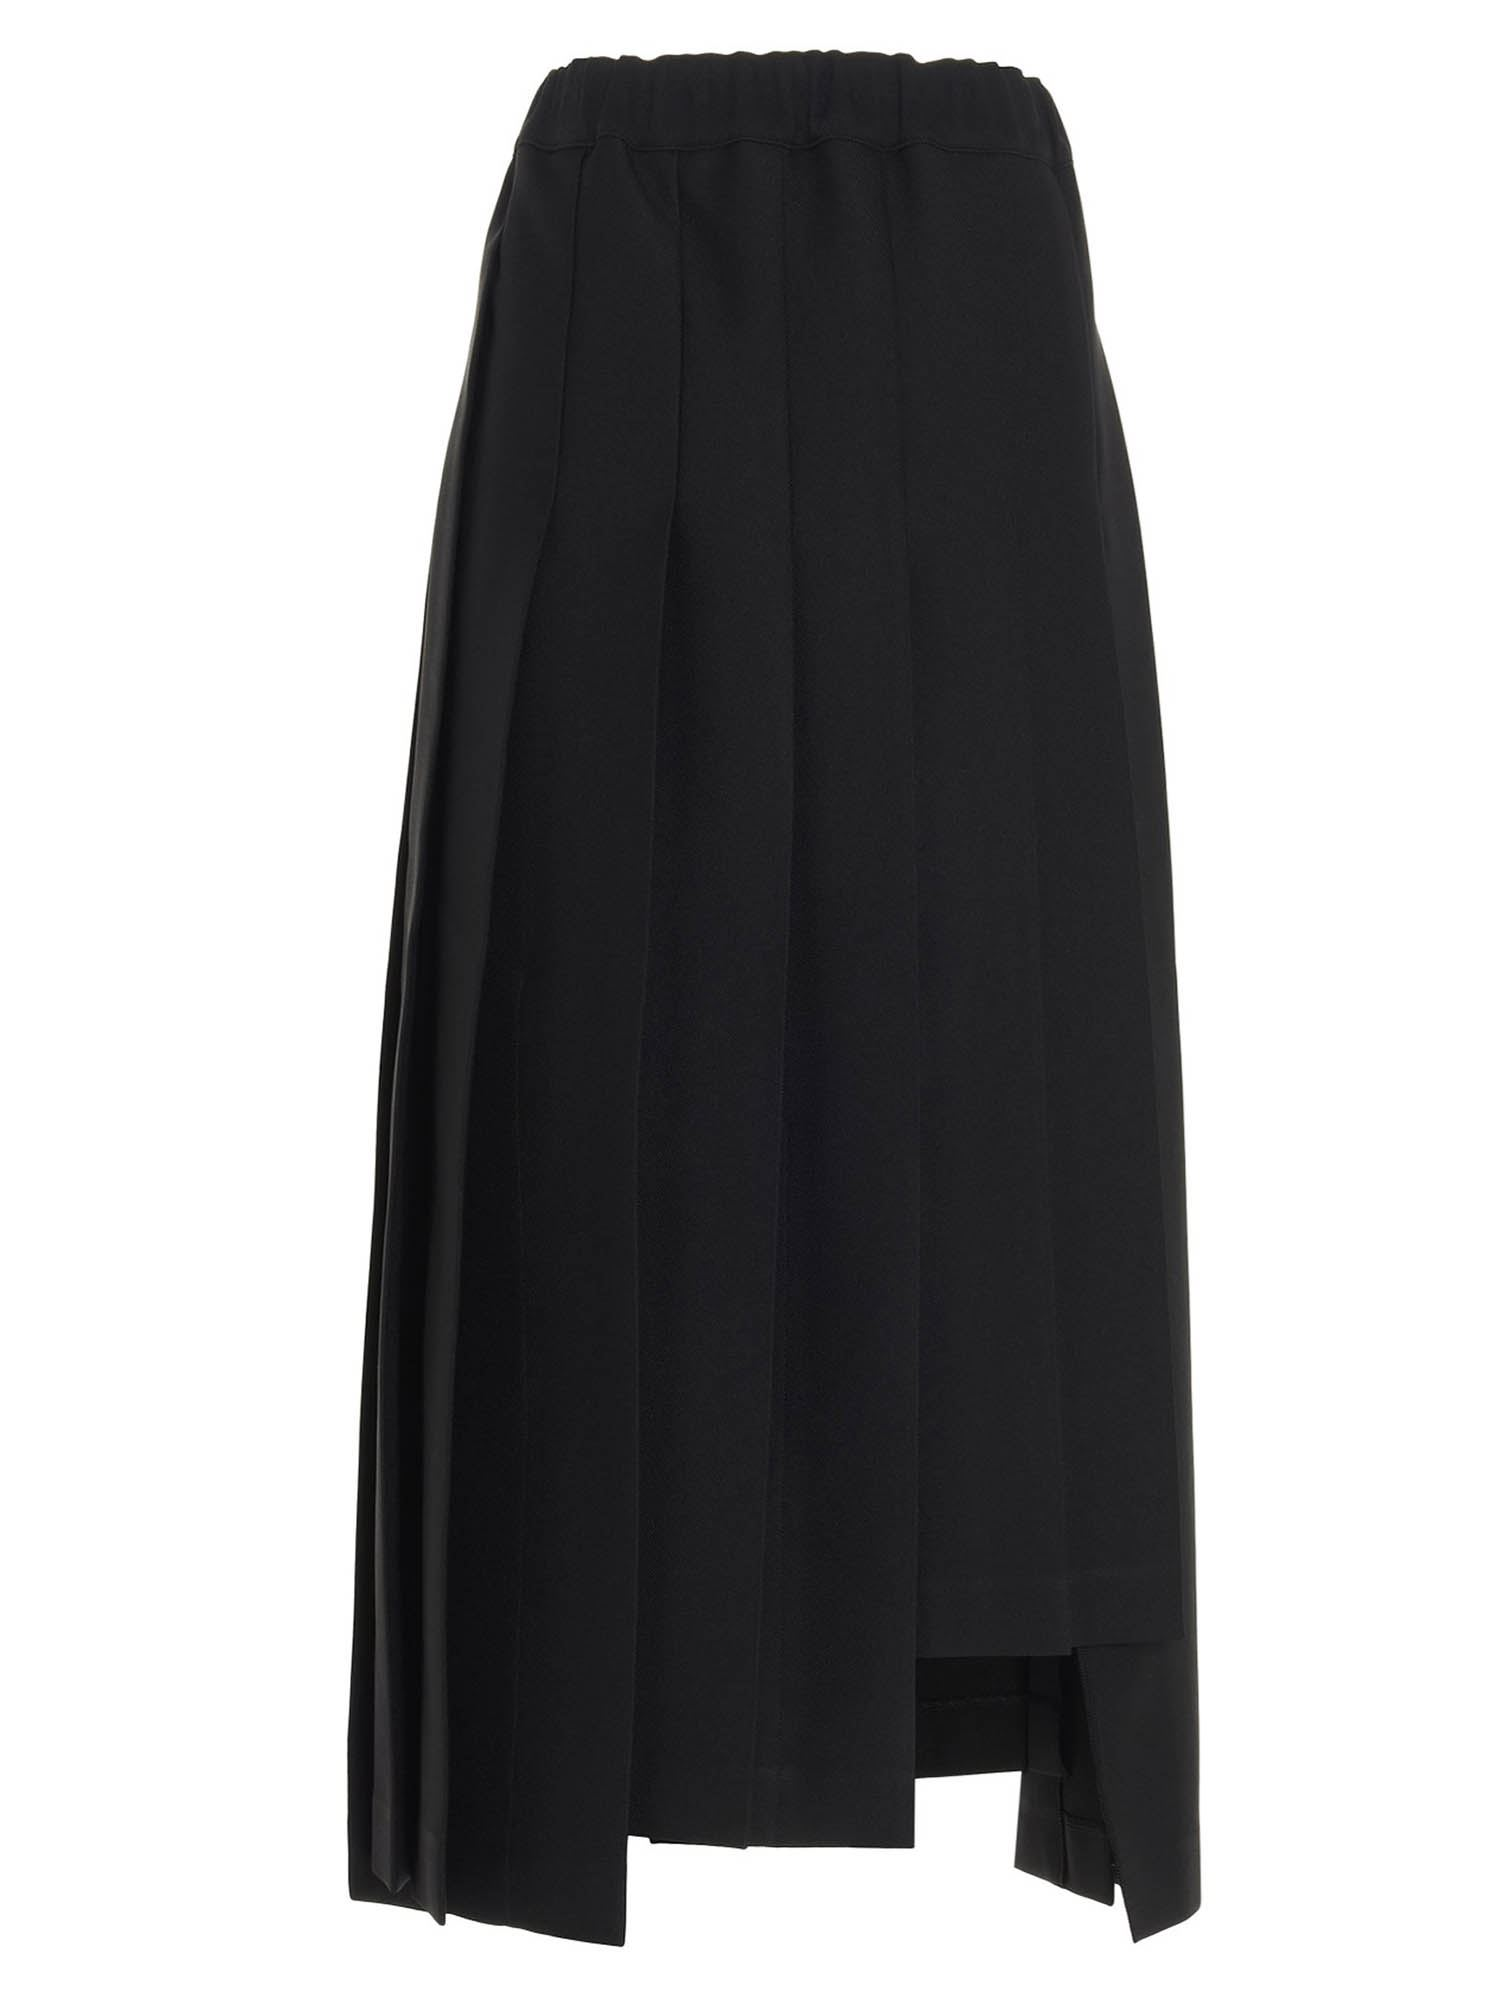 Comme Des Garçons ASYMETRIC PLEATED SKIRT IN BLACK